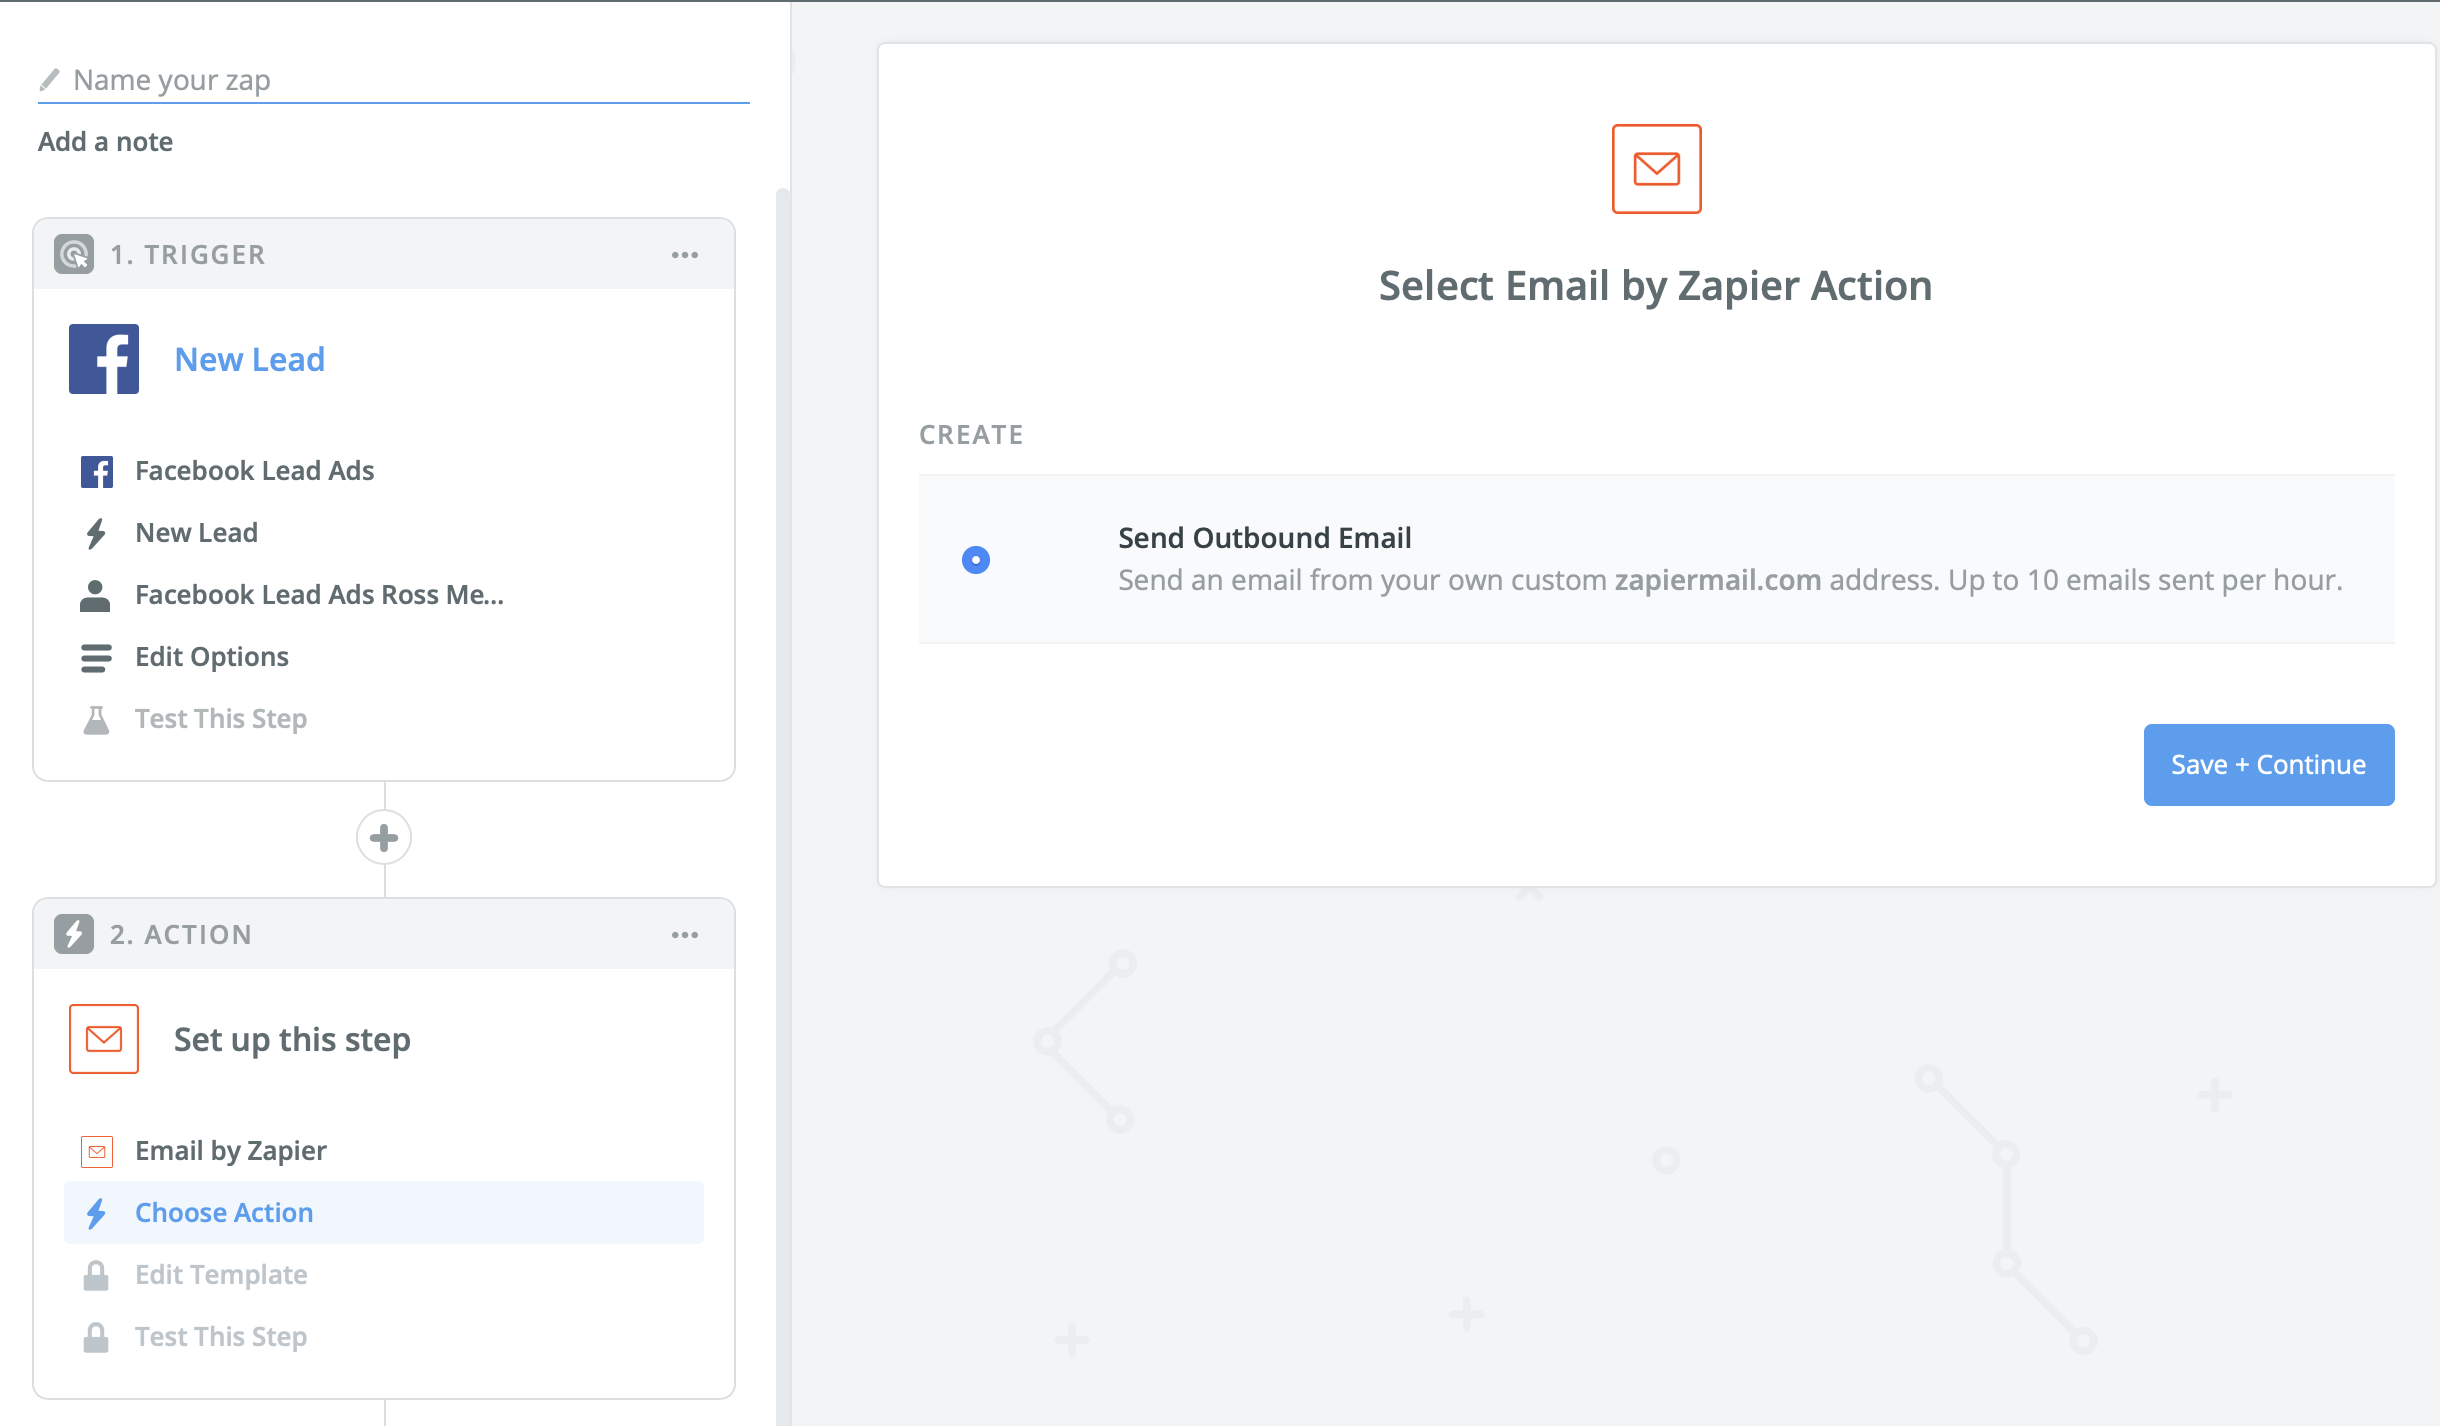 Email by Zapier for sending outbound email